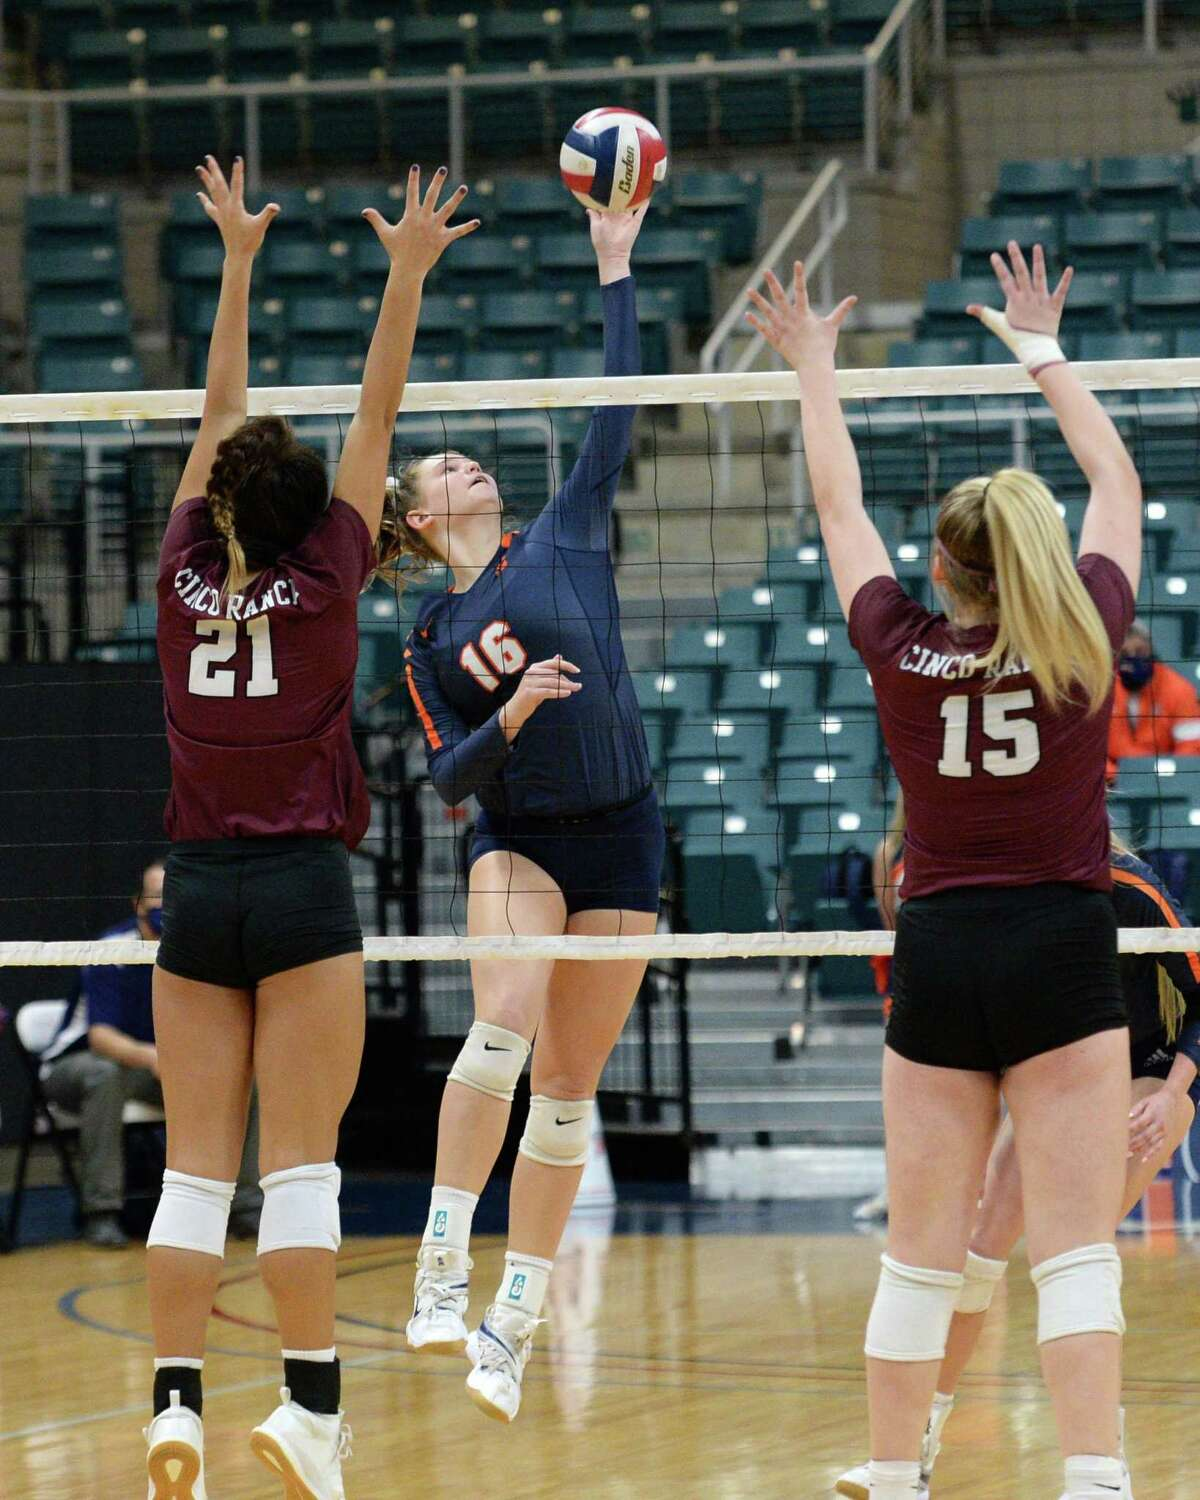 Emma Schroder (16) of Seven Lakes attempts a shot past Kayla Griebl (21) and Camryn Moon (15) of Cinco Ranch during the first set of a 6A-III regional quarterfinal game between the Cinco Ranch Cougars and the Seven Lakes Spartans on Saturday, November 28, 2020 at Leonard Merrell Center, Katy, TX.